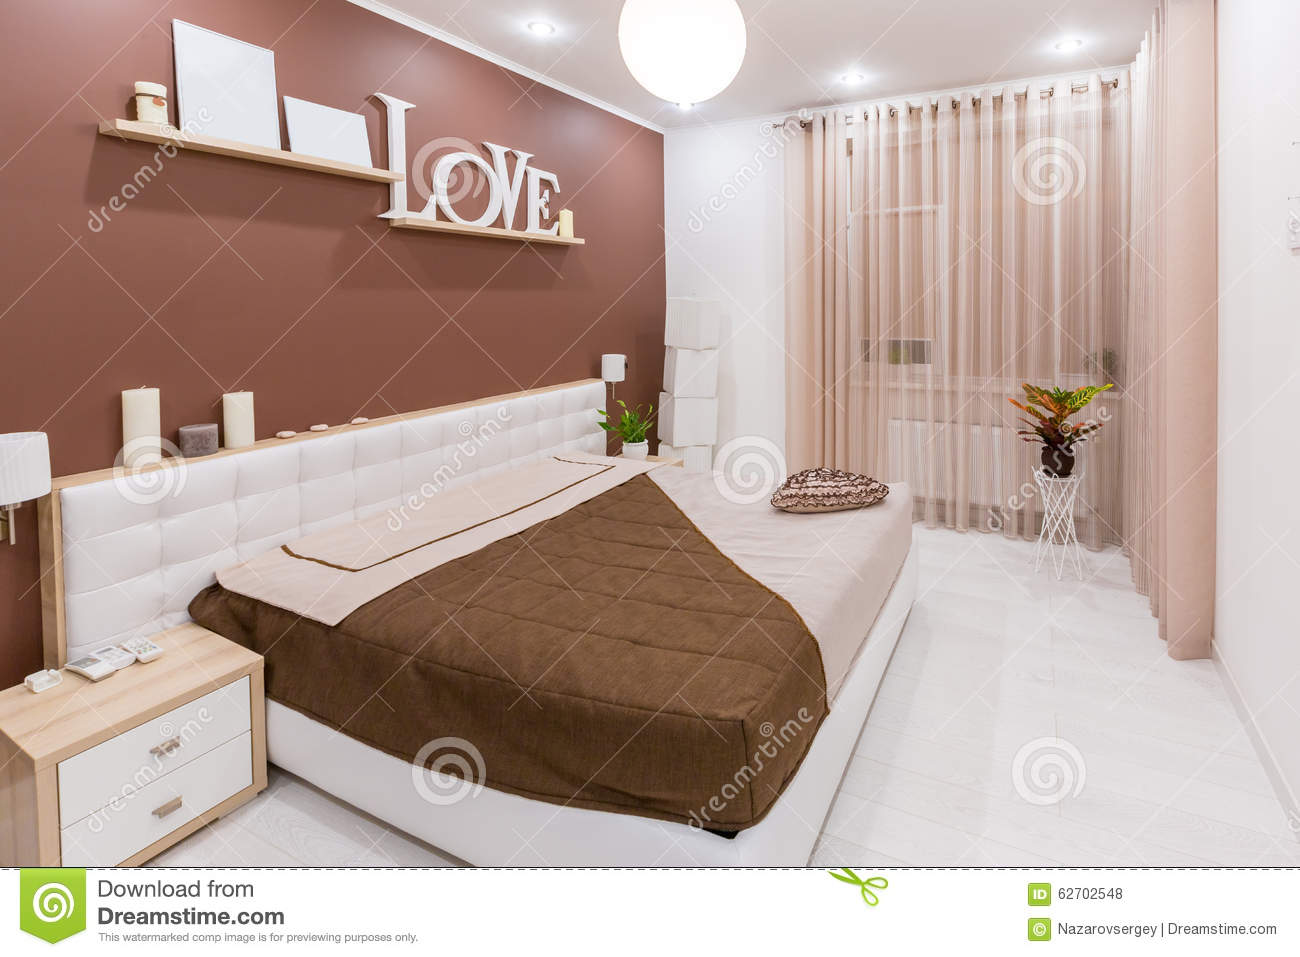 Minimalism bedroom ask home design for Minimalist chic bedroom